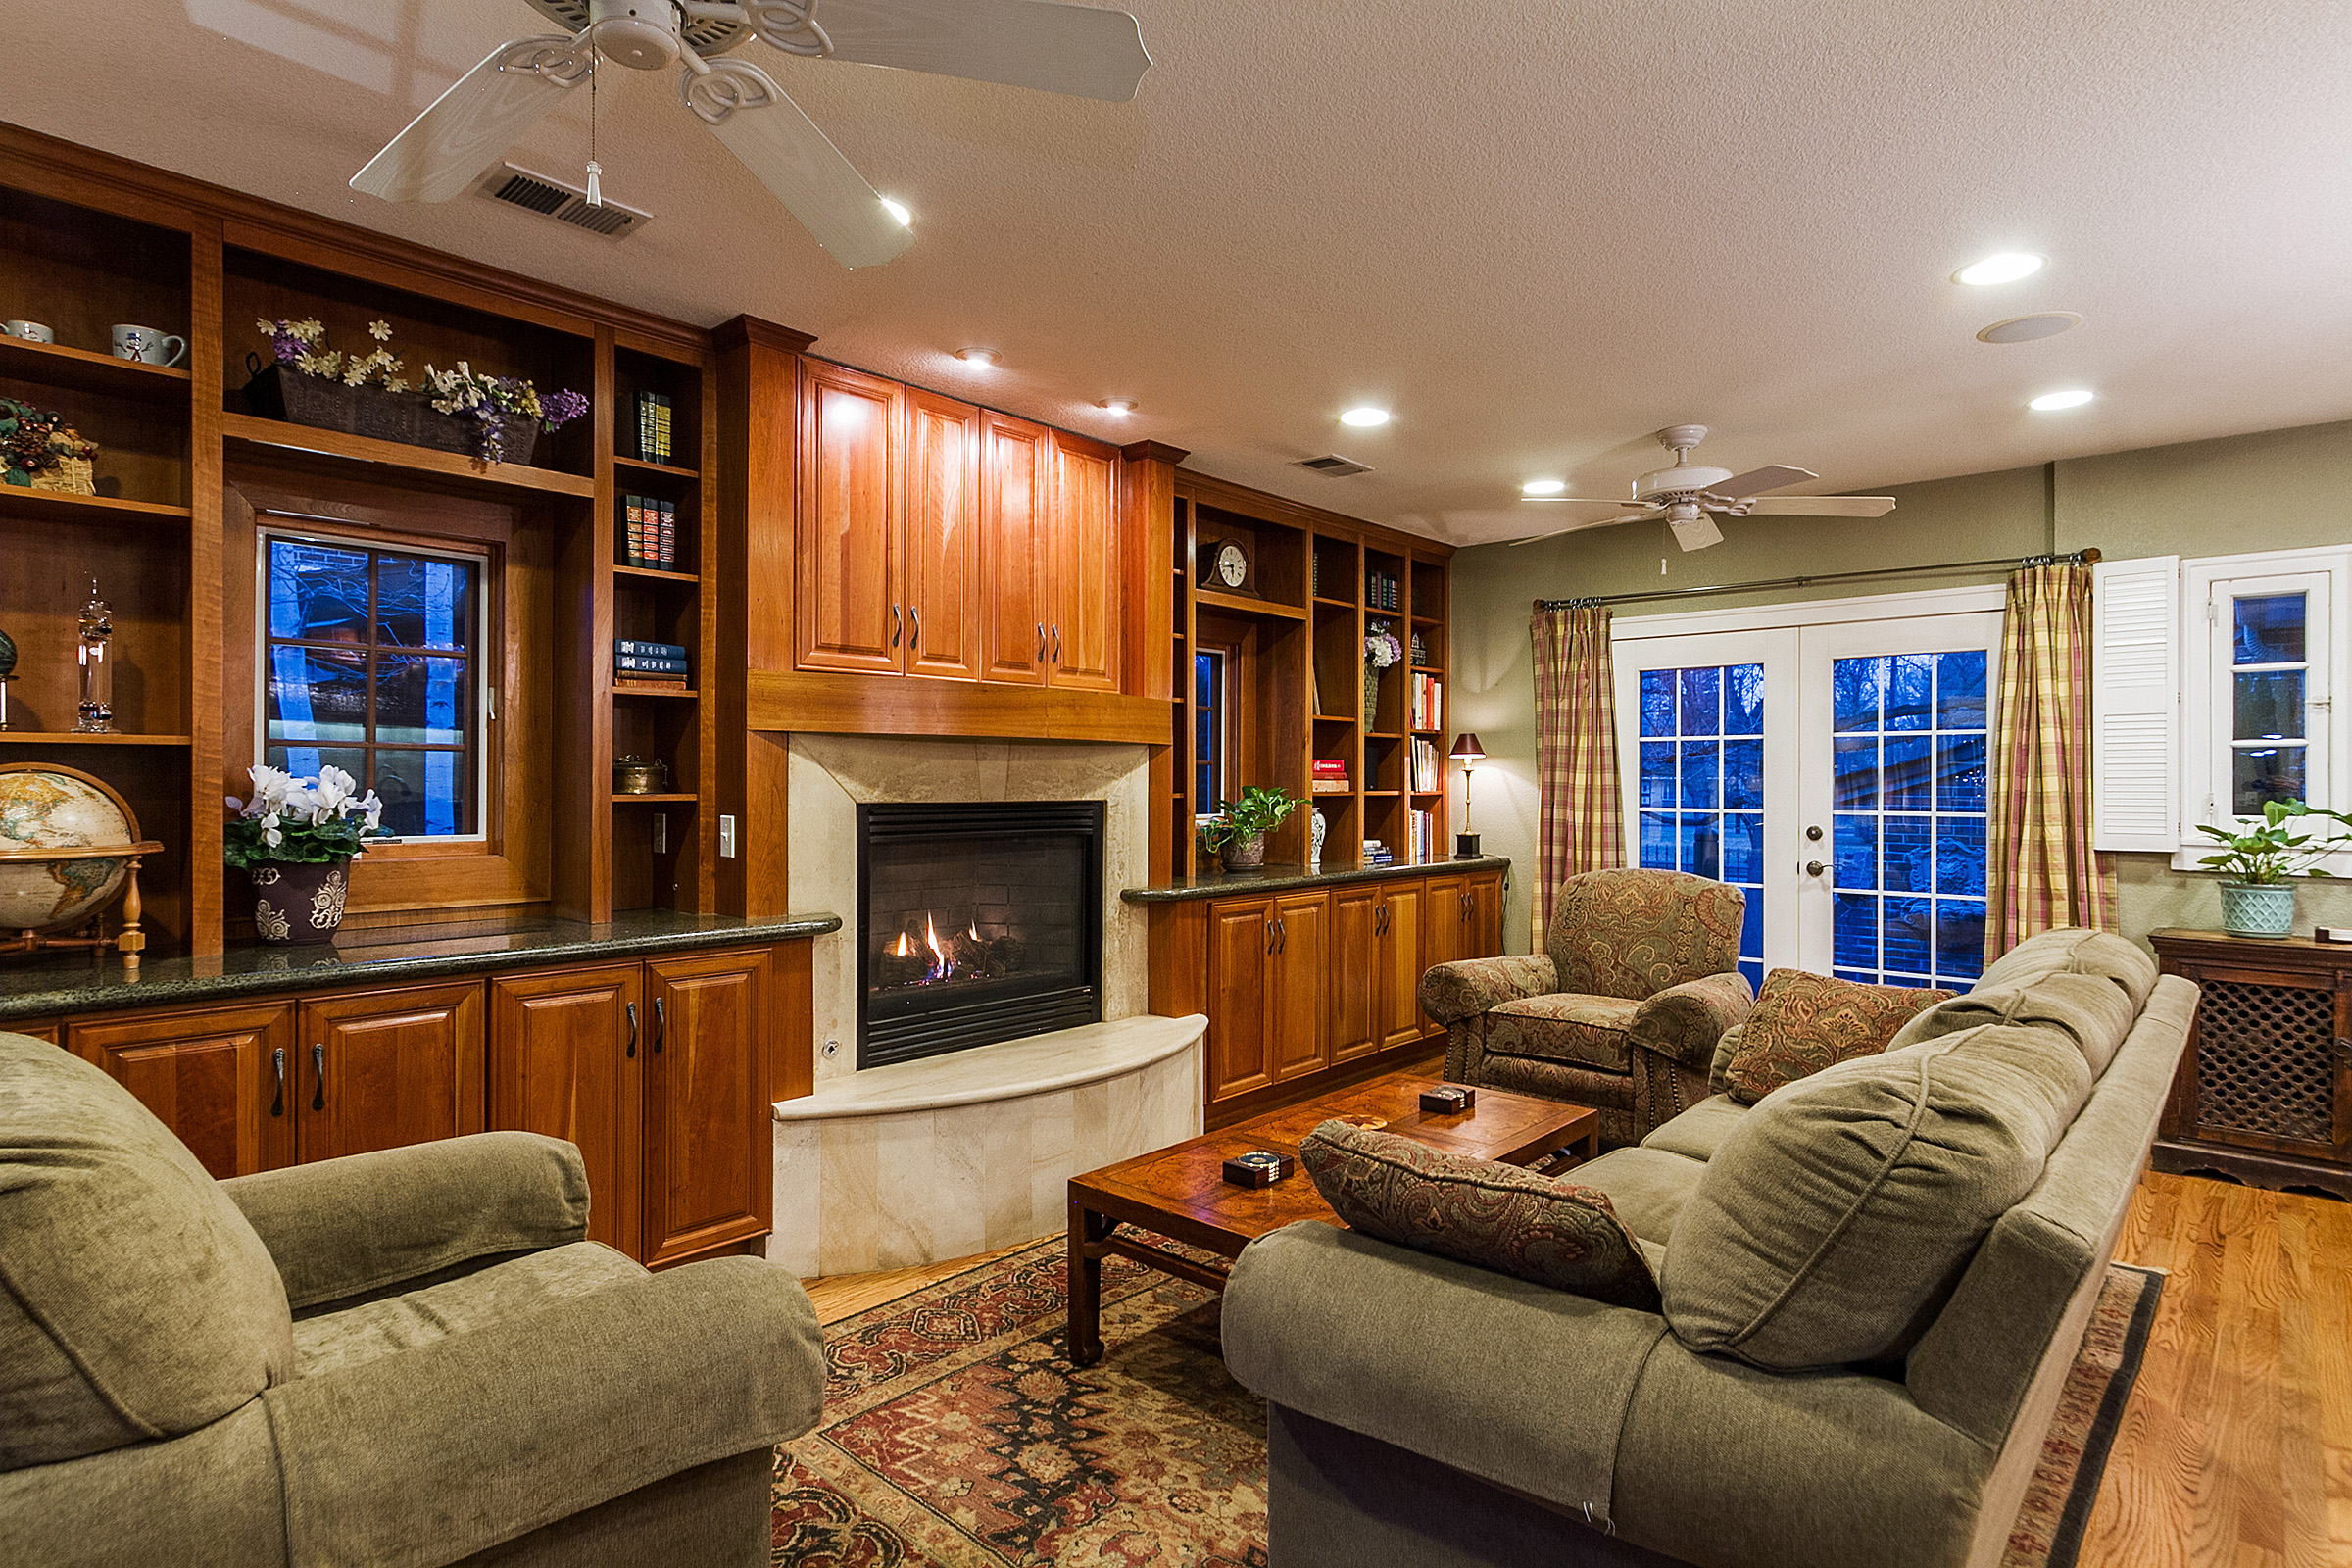 1183110_Family-Room-Bookcases-and-TV-Alcove-Above-FP_high.jpg